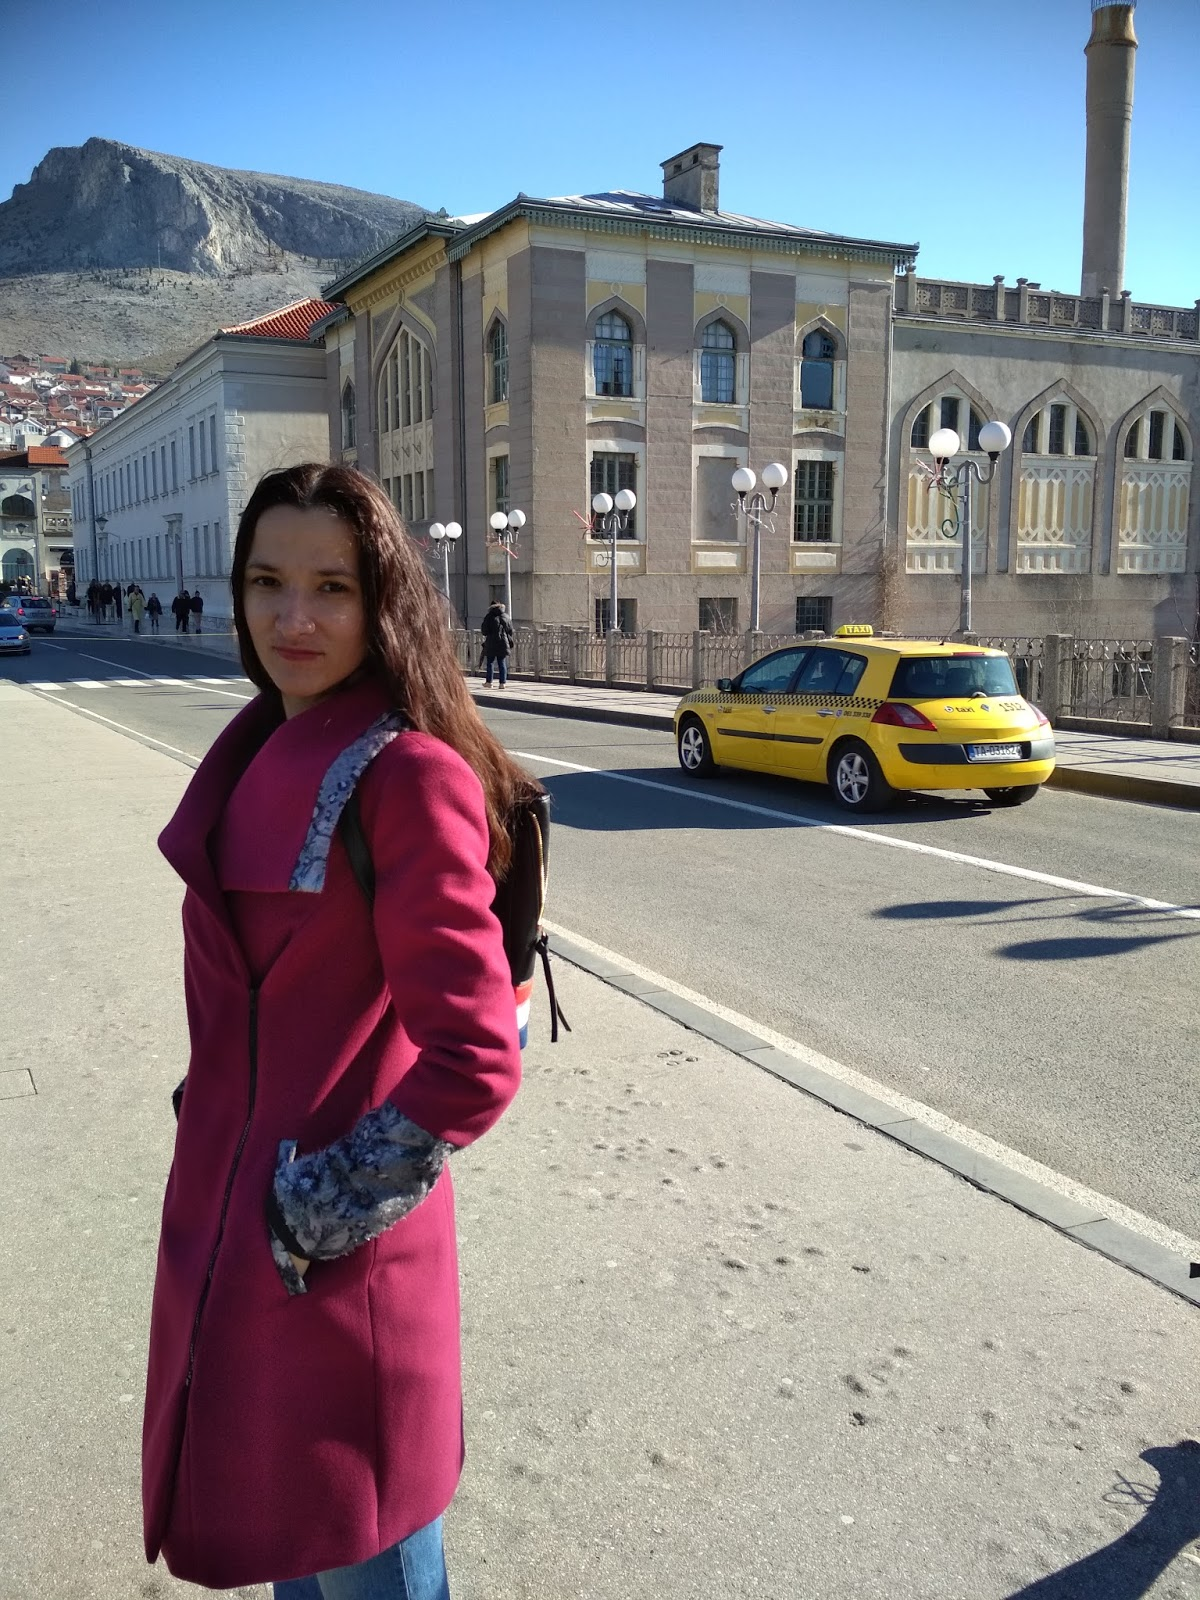 Flare jeans and magetna coat (location Mostar, BIH)